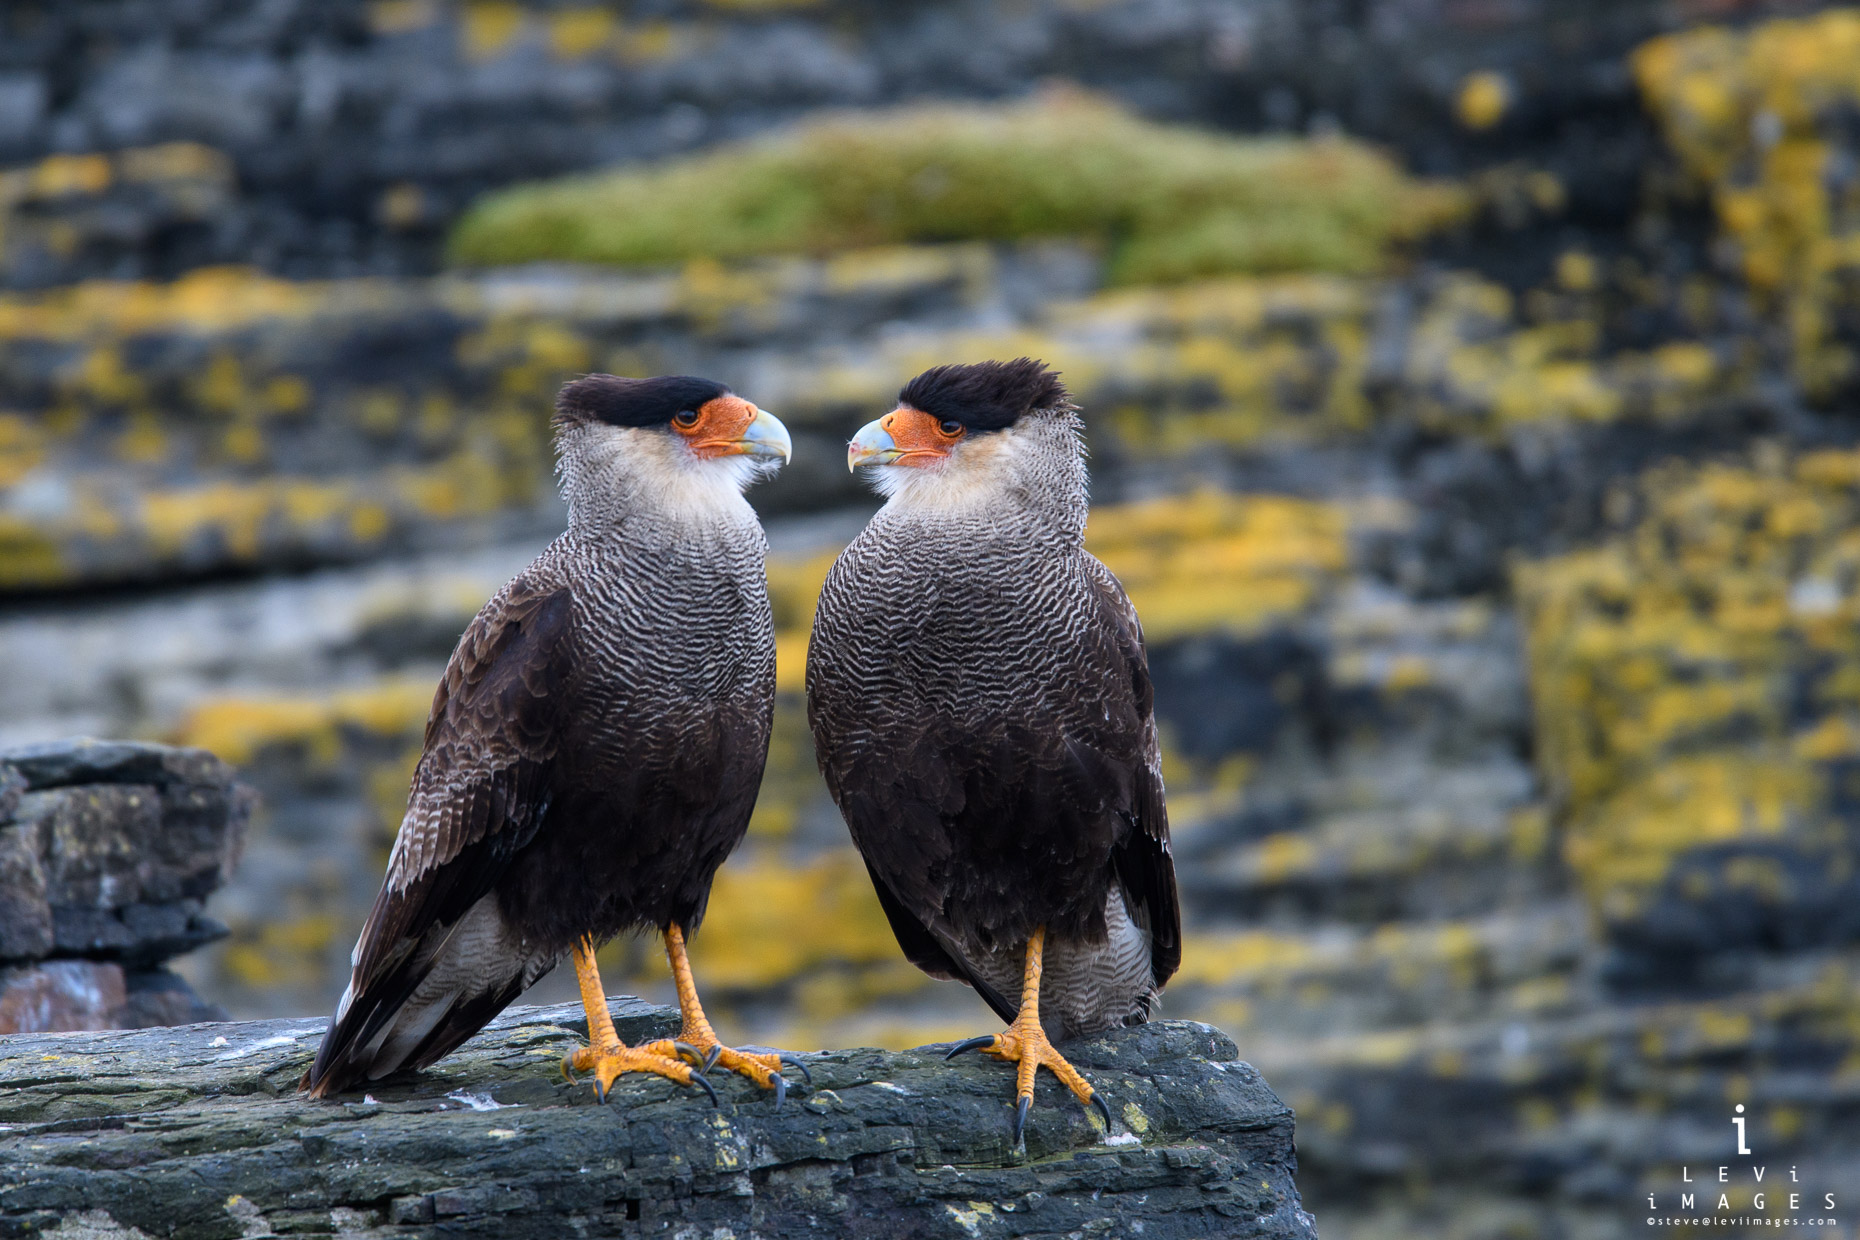 A pair of Southern crested caracara (Caracara plancus) poses in front of Moss-covered cliffs. Bleaker Island, Falkland Islands